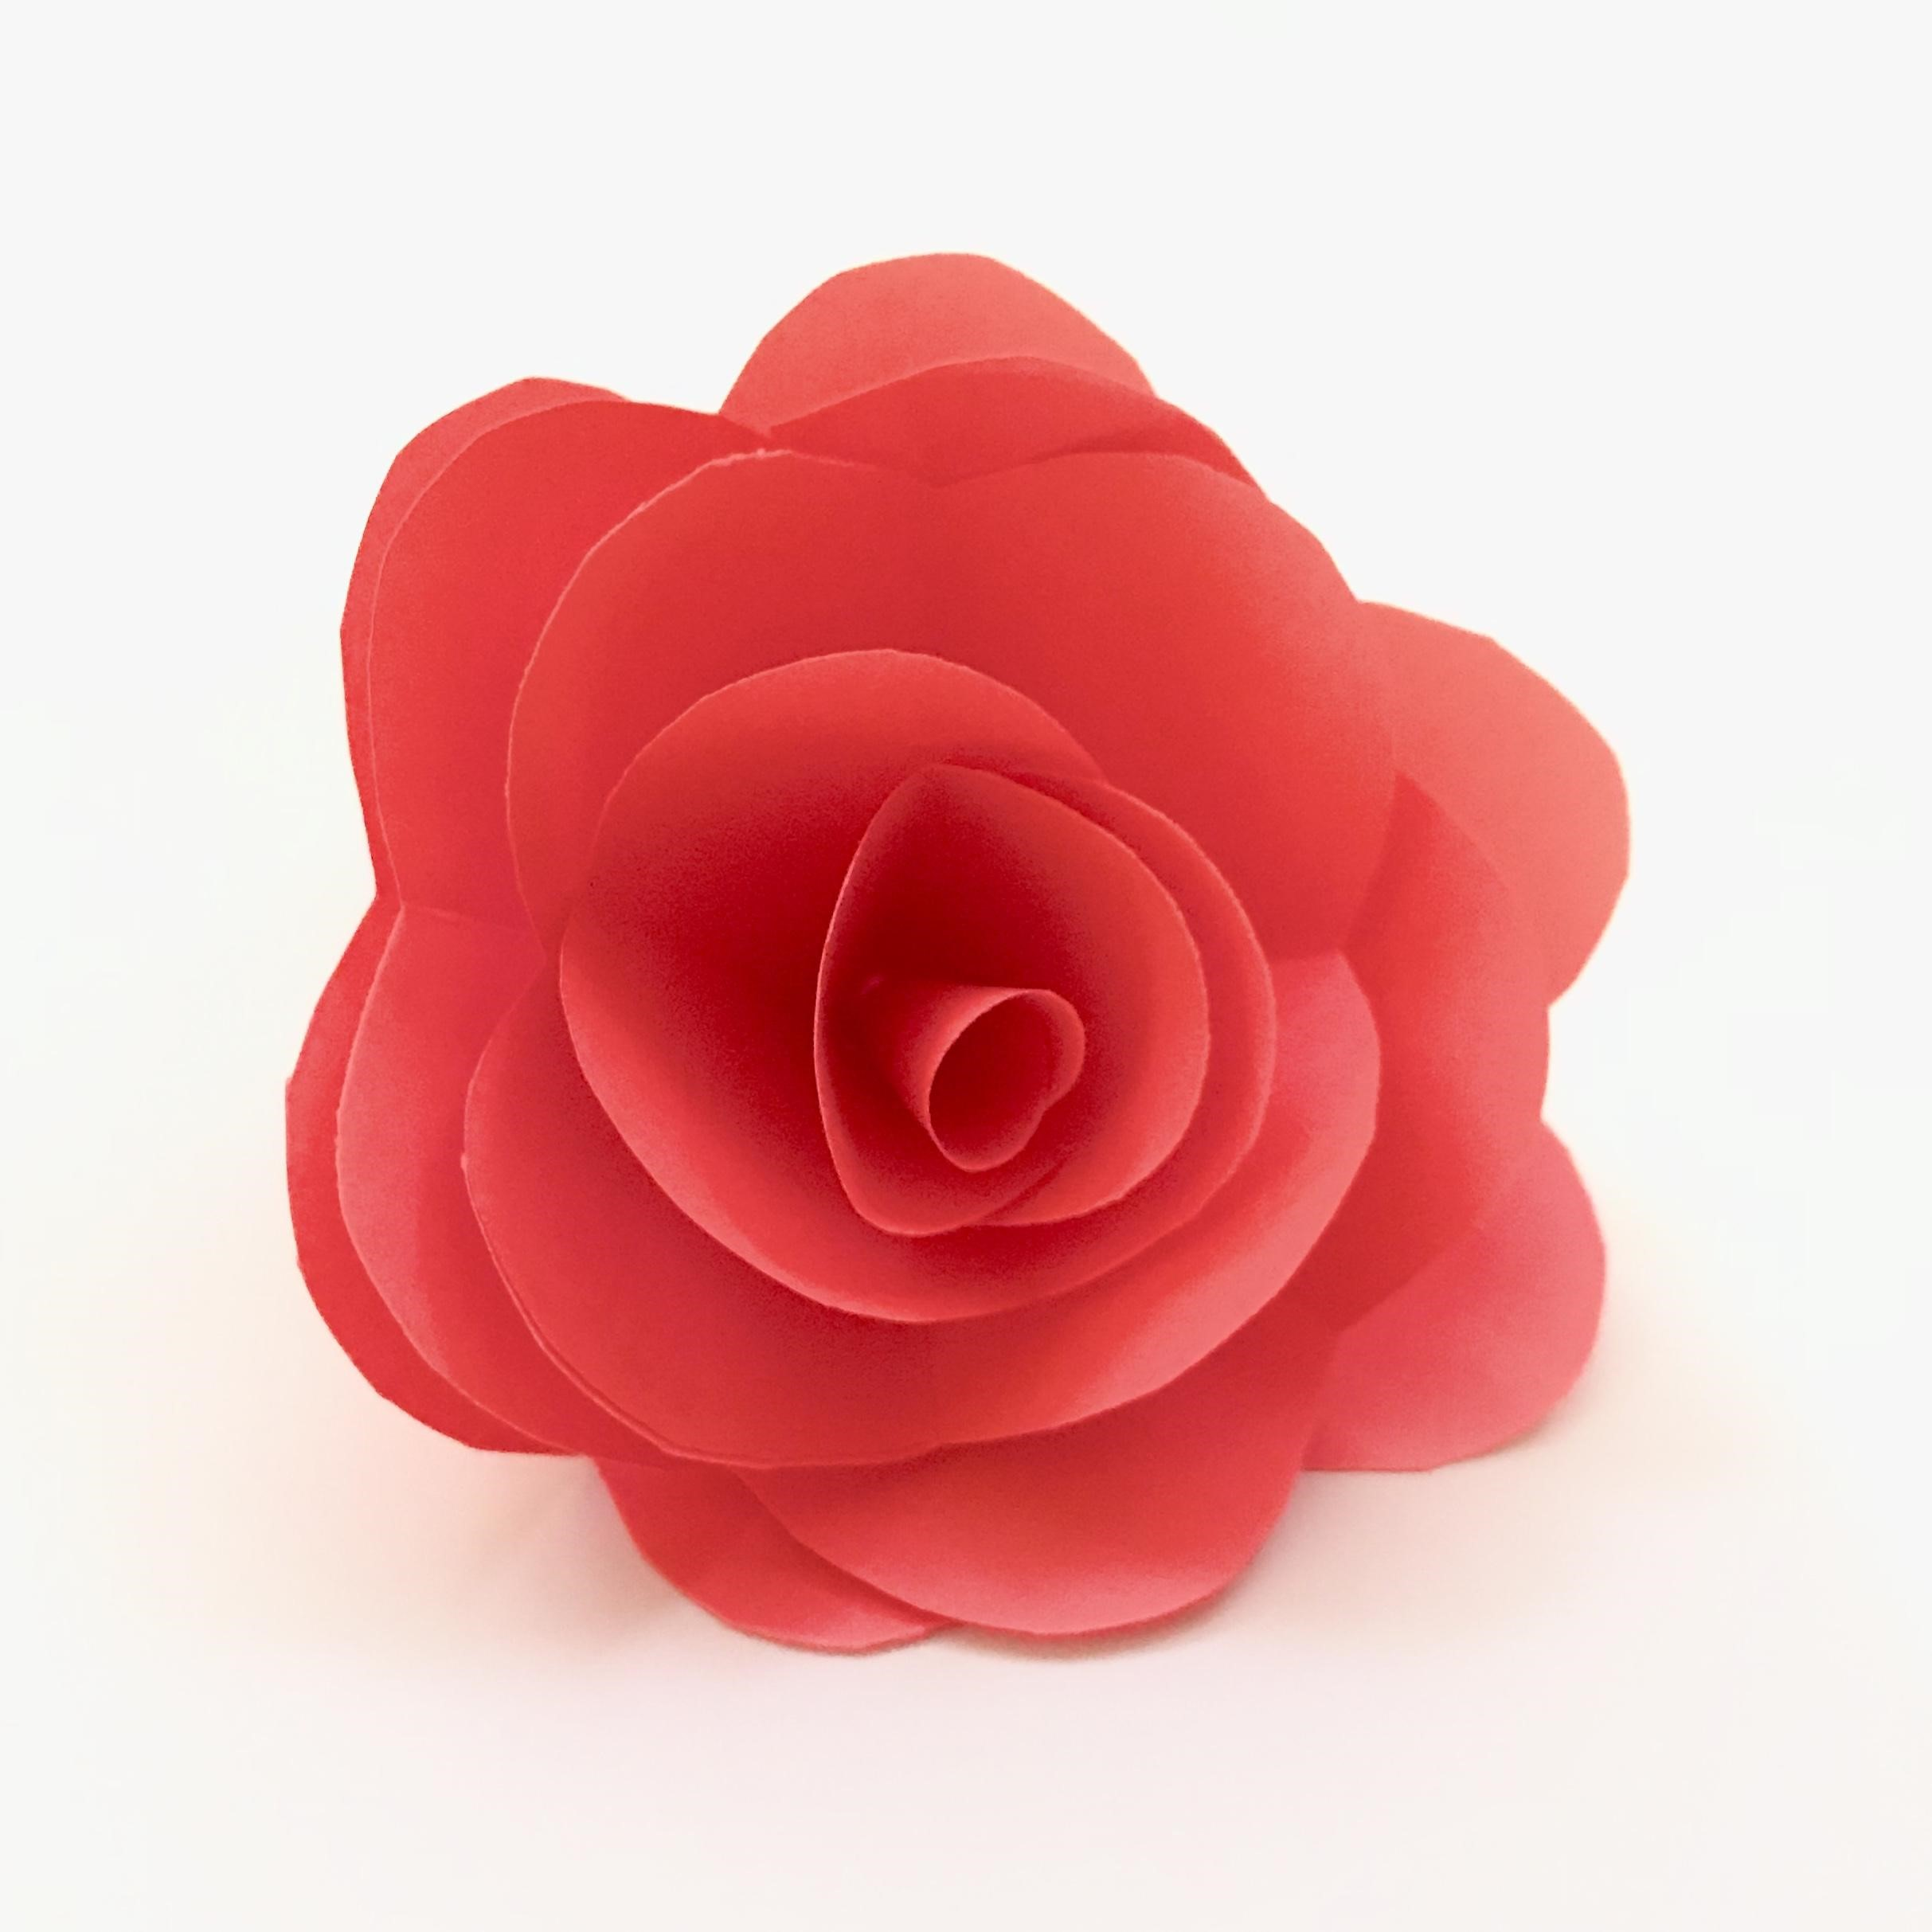 Red rose made out of paper